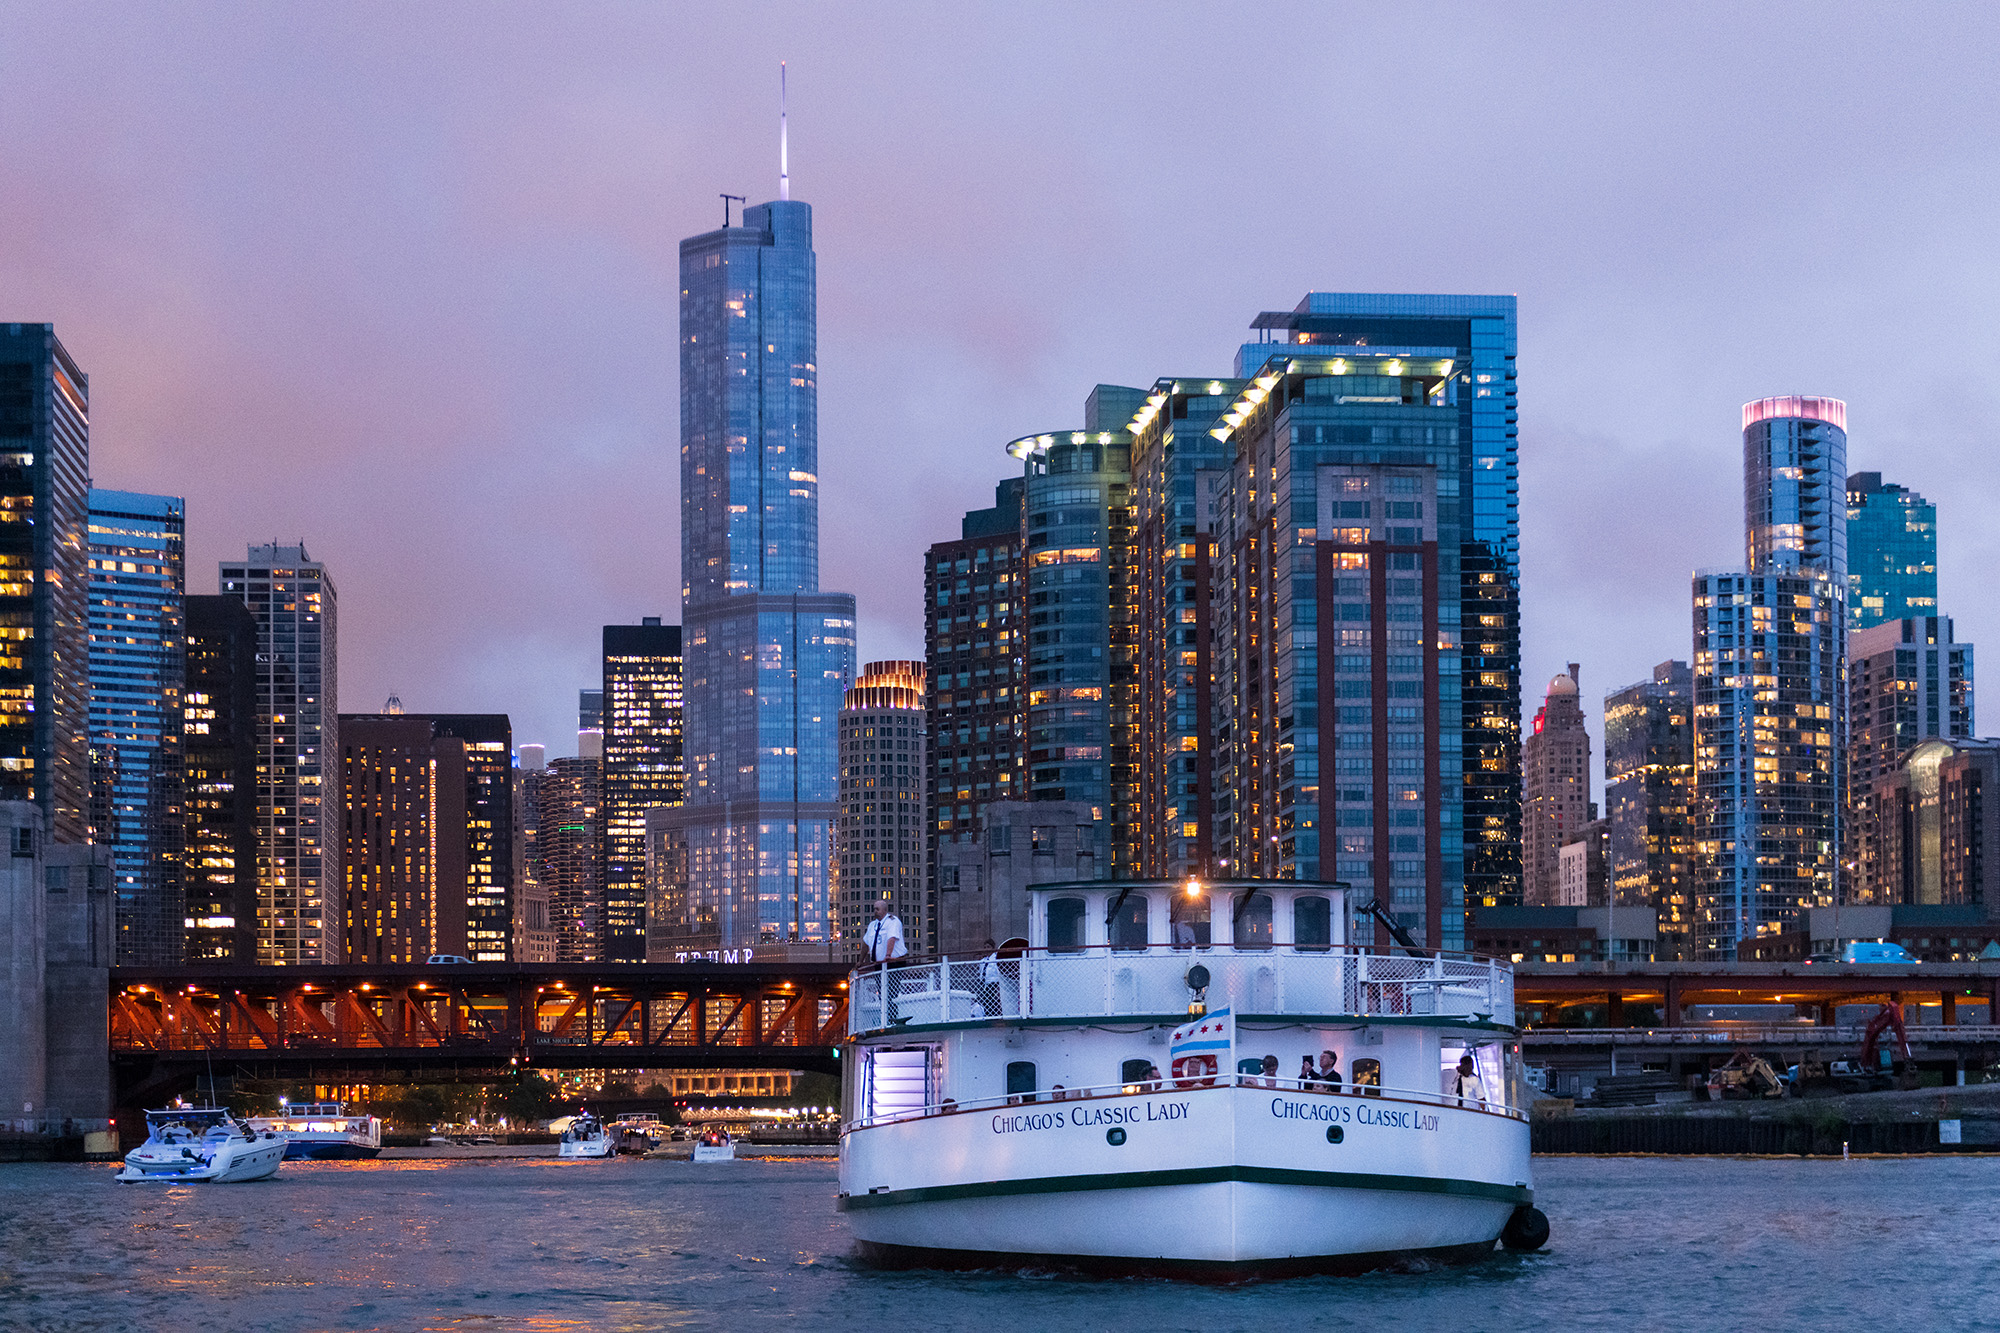 CAFC River Cruise aboard Chicago's First Lady